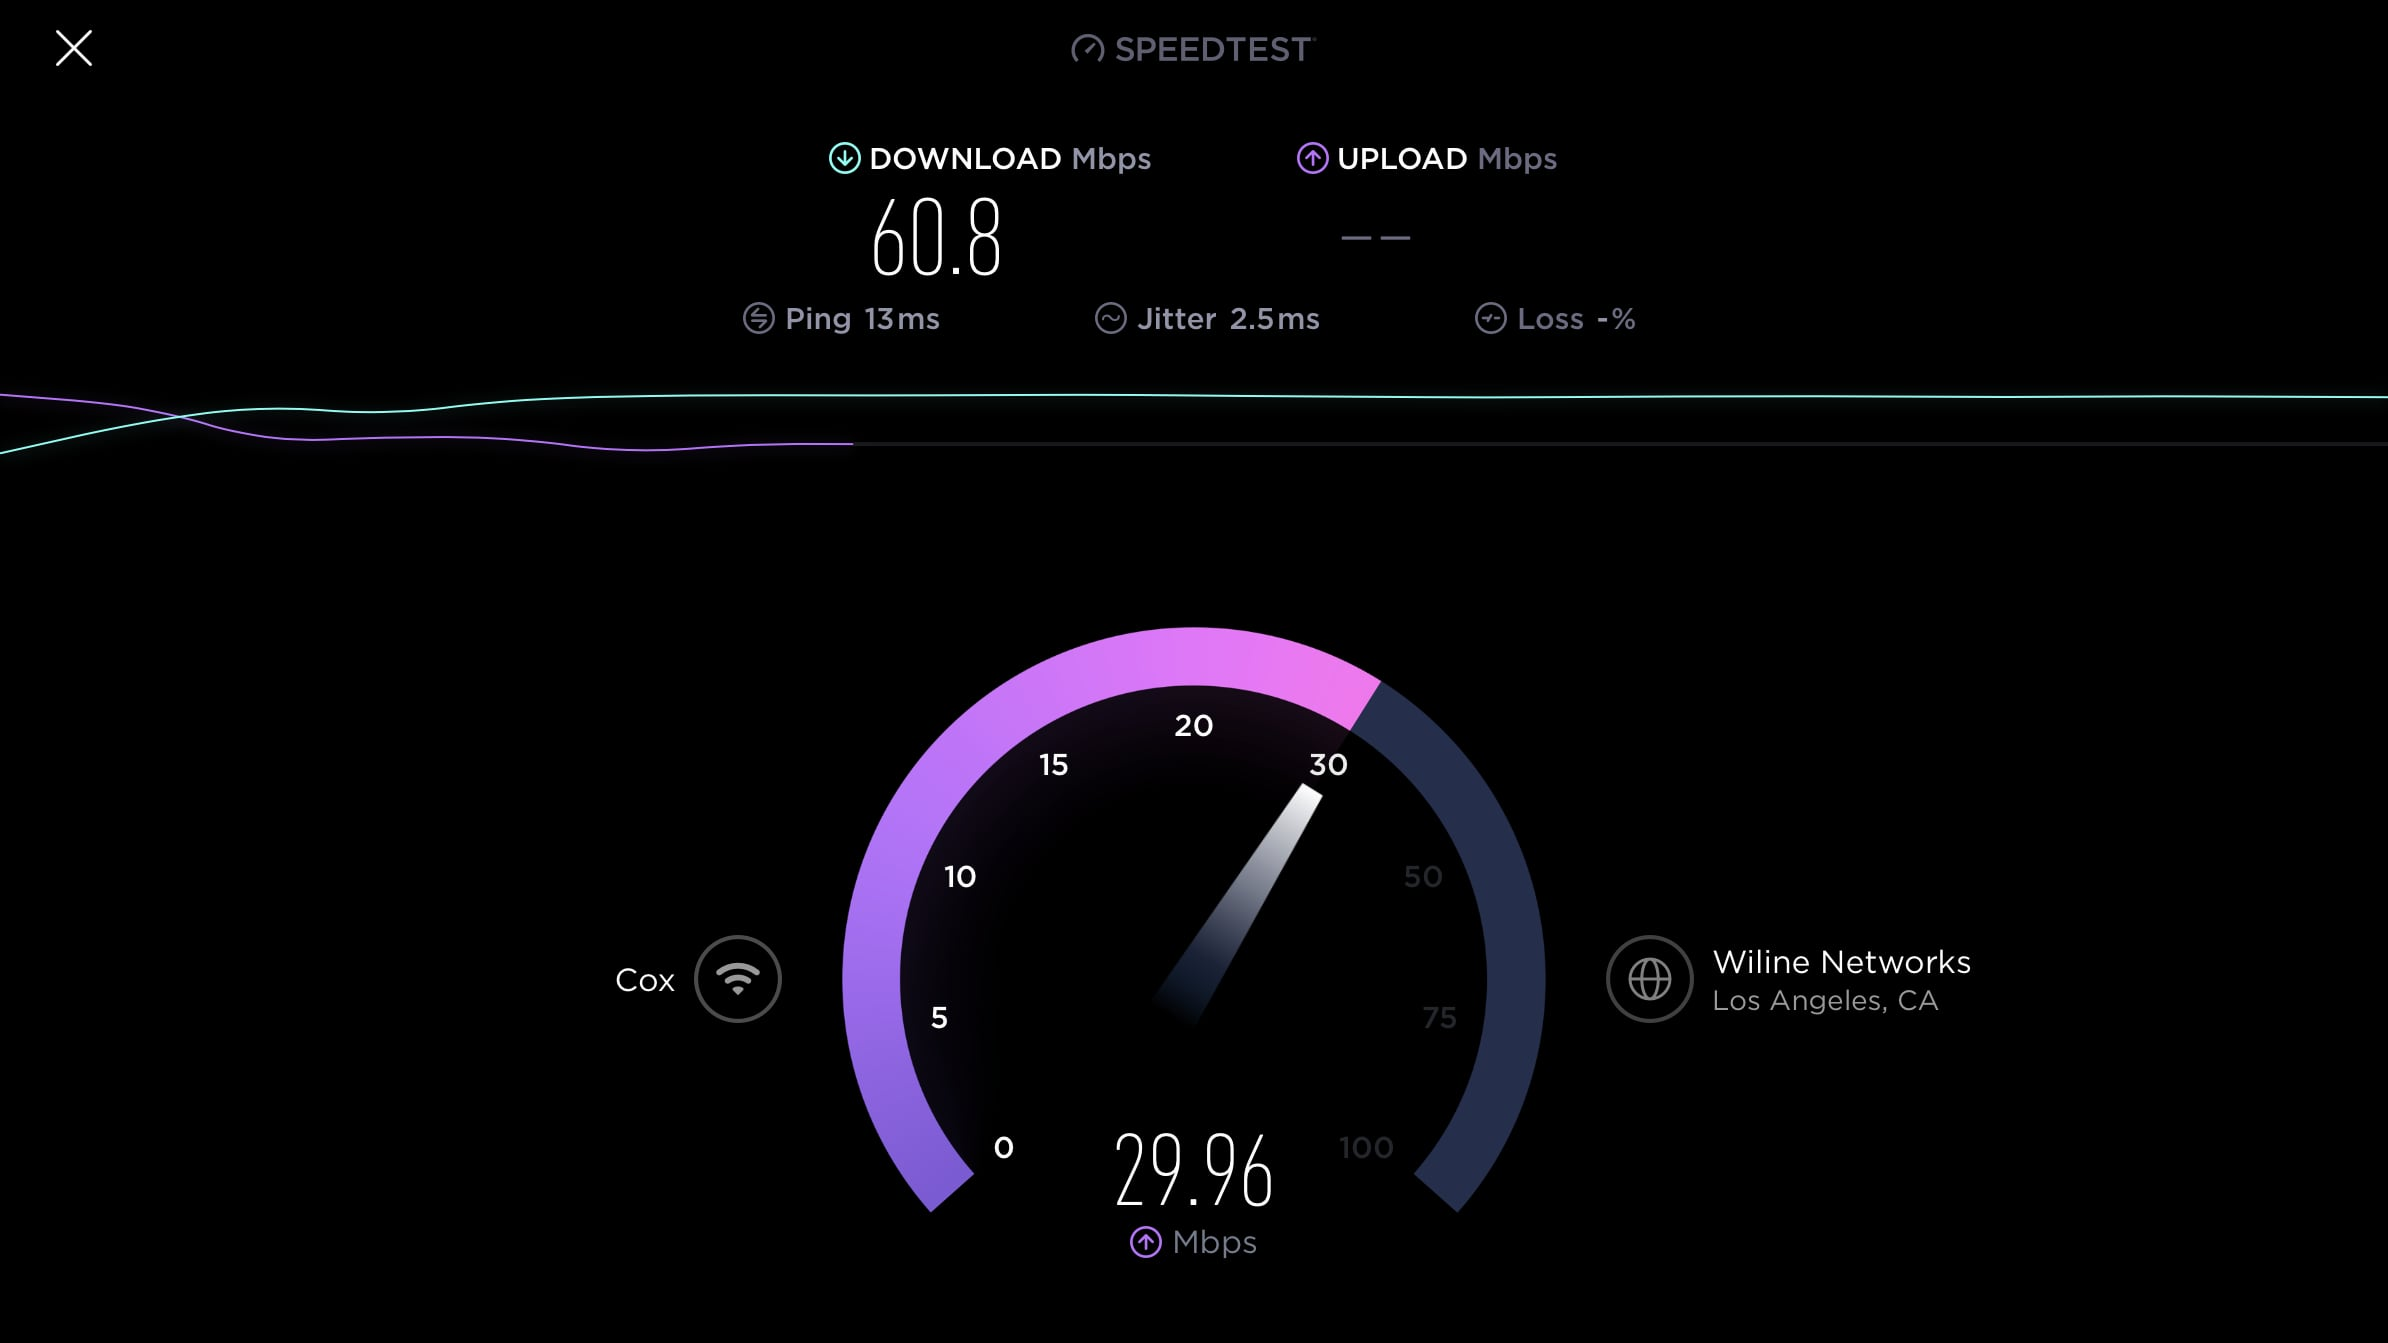 Ookla: As 5G dawns, U S  mobile download speeds jump